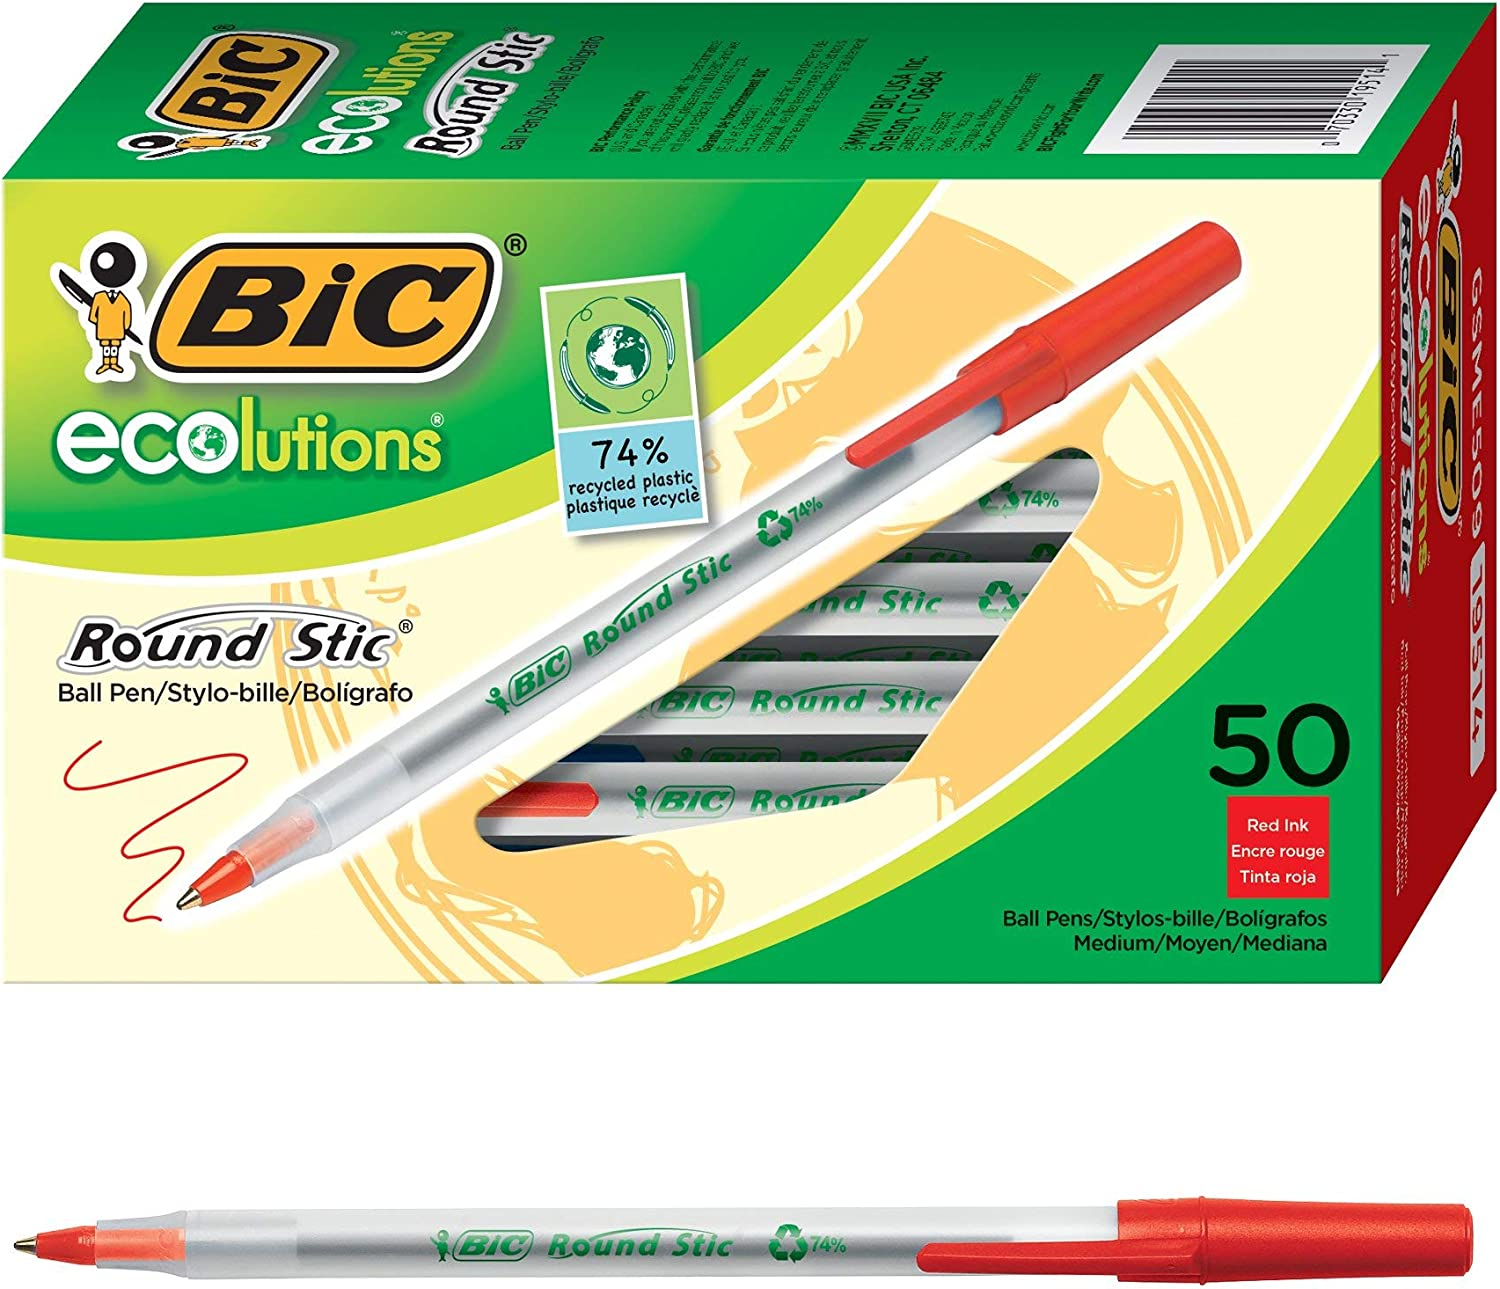 New Medium Point 1.0mm 50-Count Red Ecolutions Round Stic Ballpoint Pen